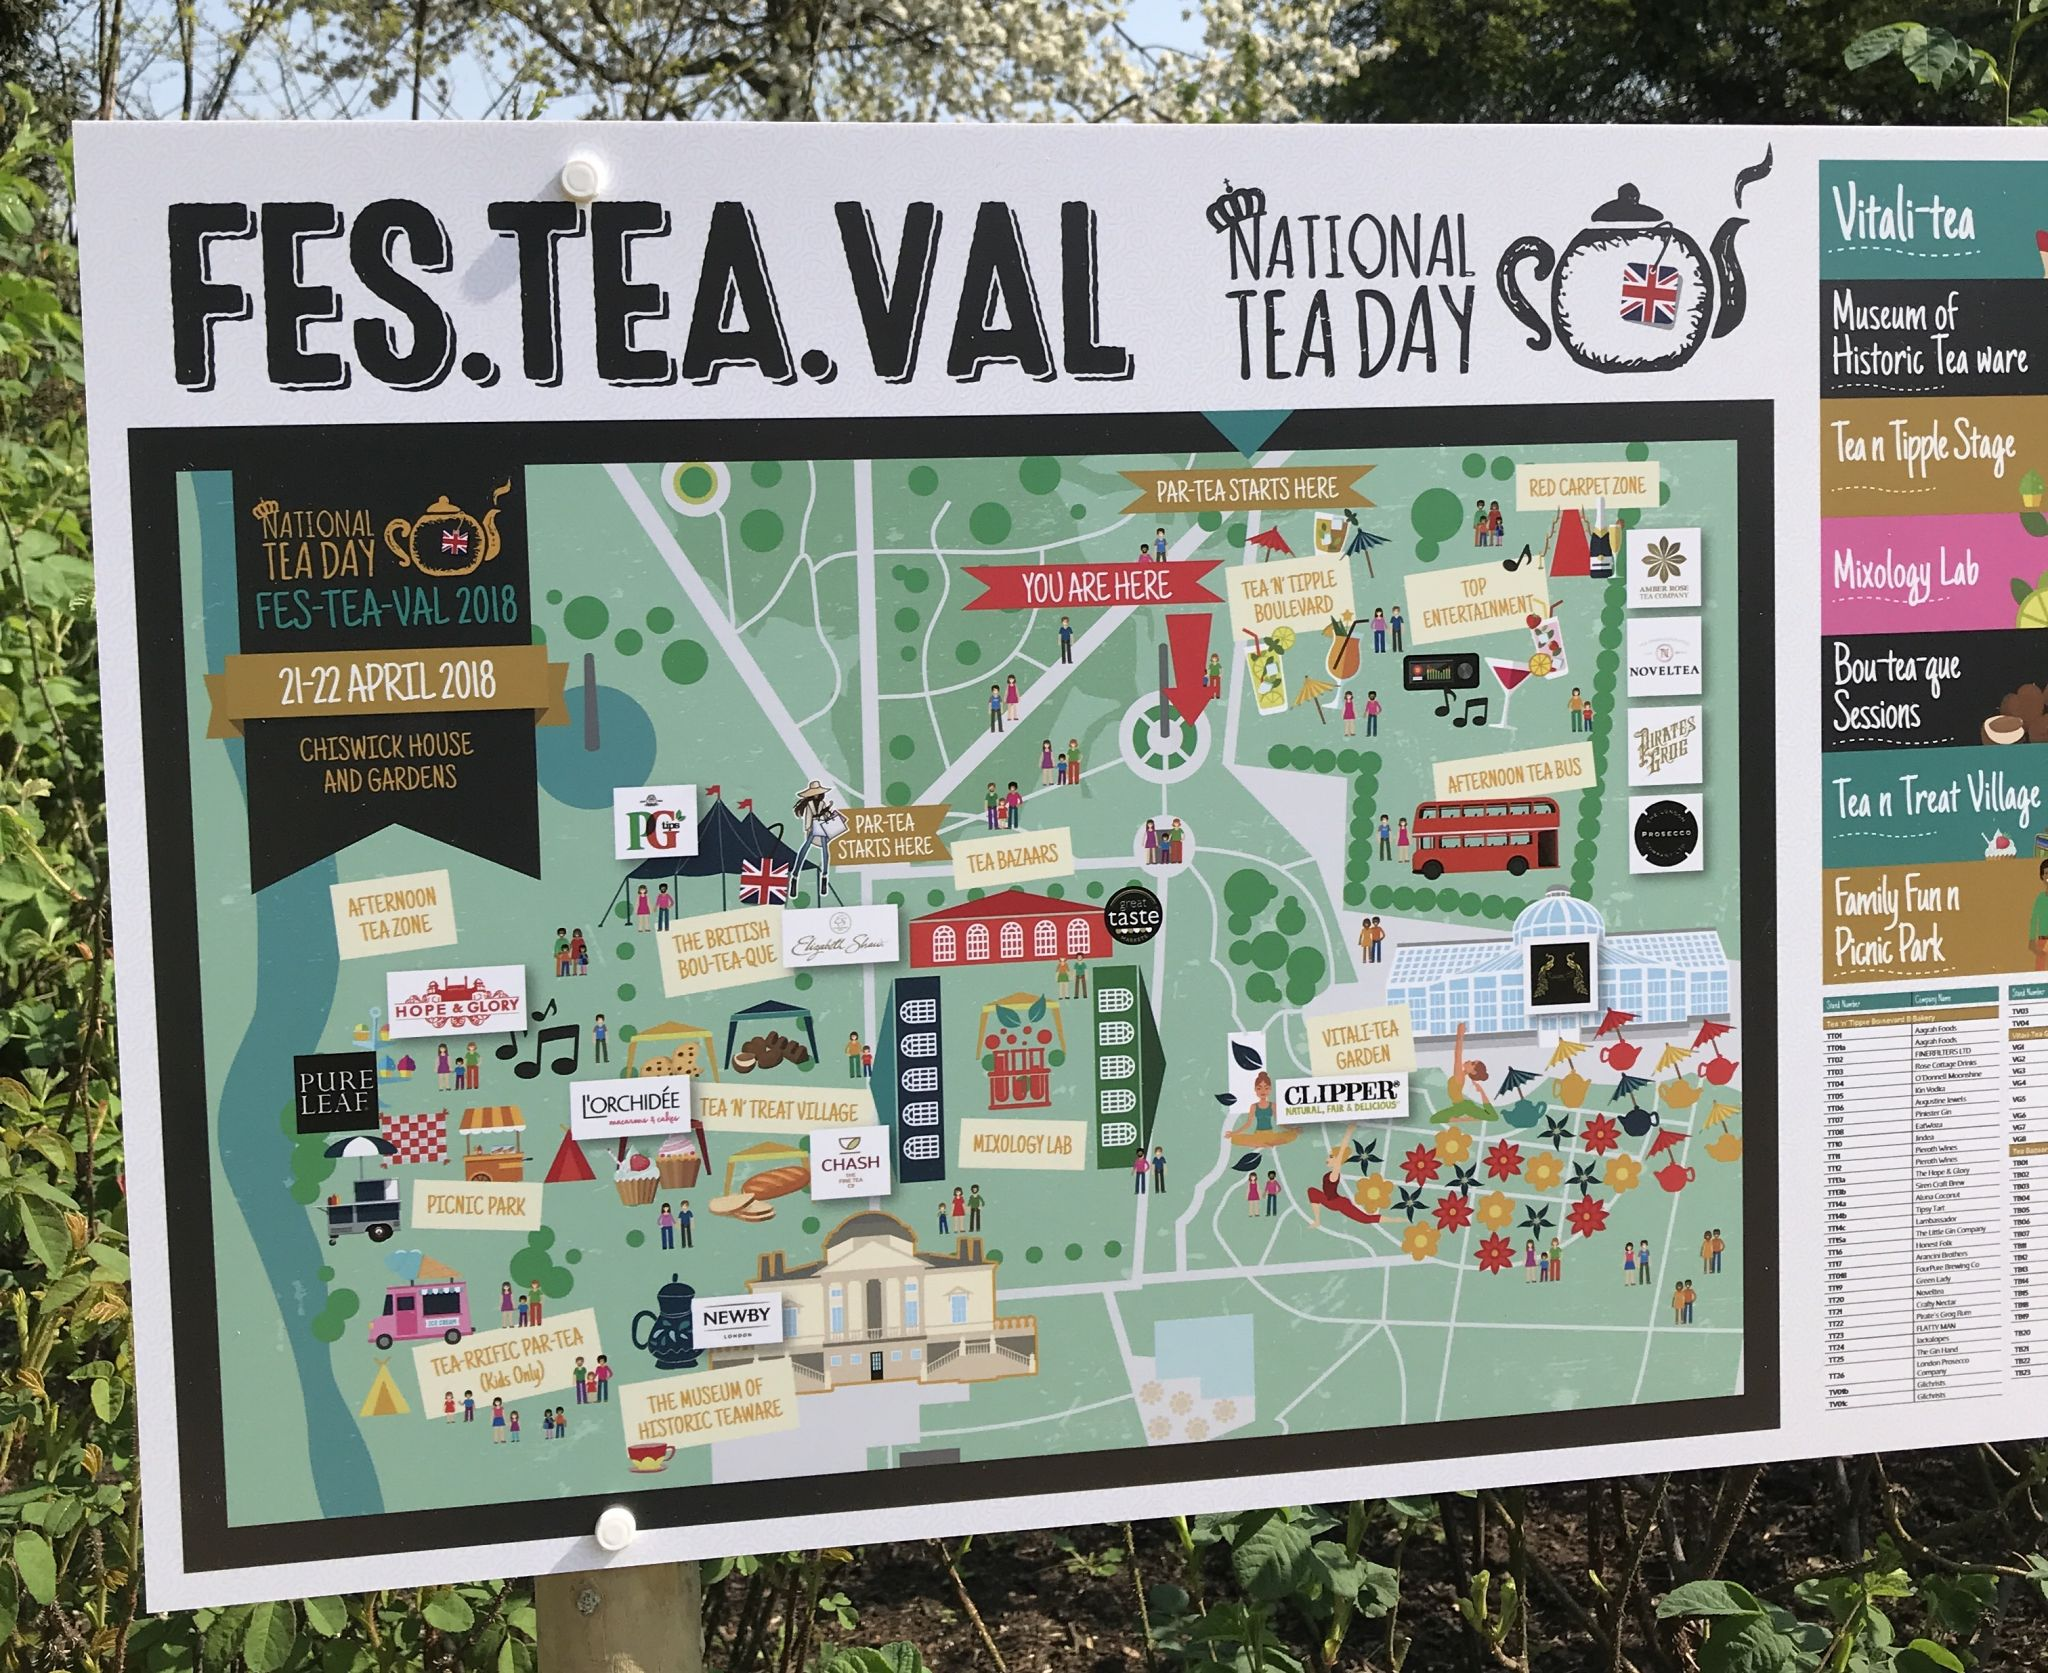 National Tea Day:  My Fes-tea-val experience